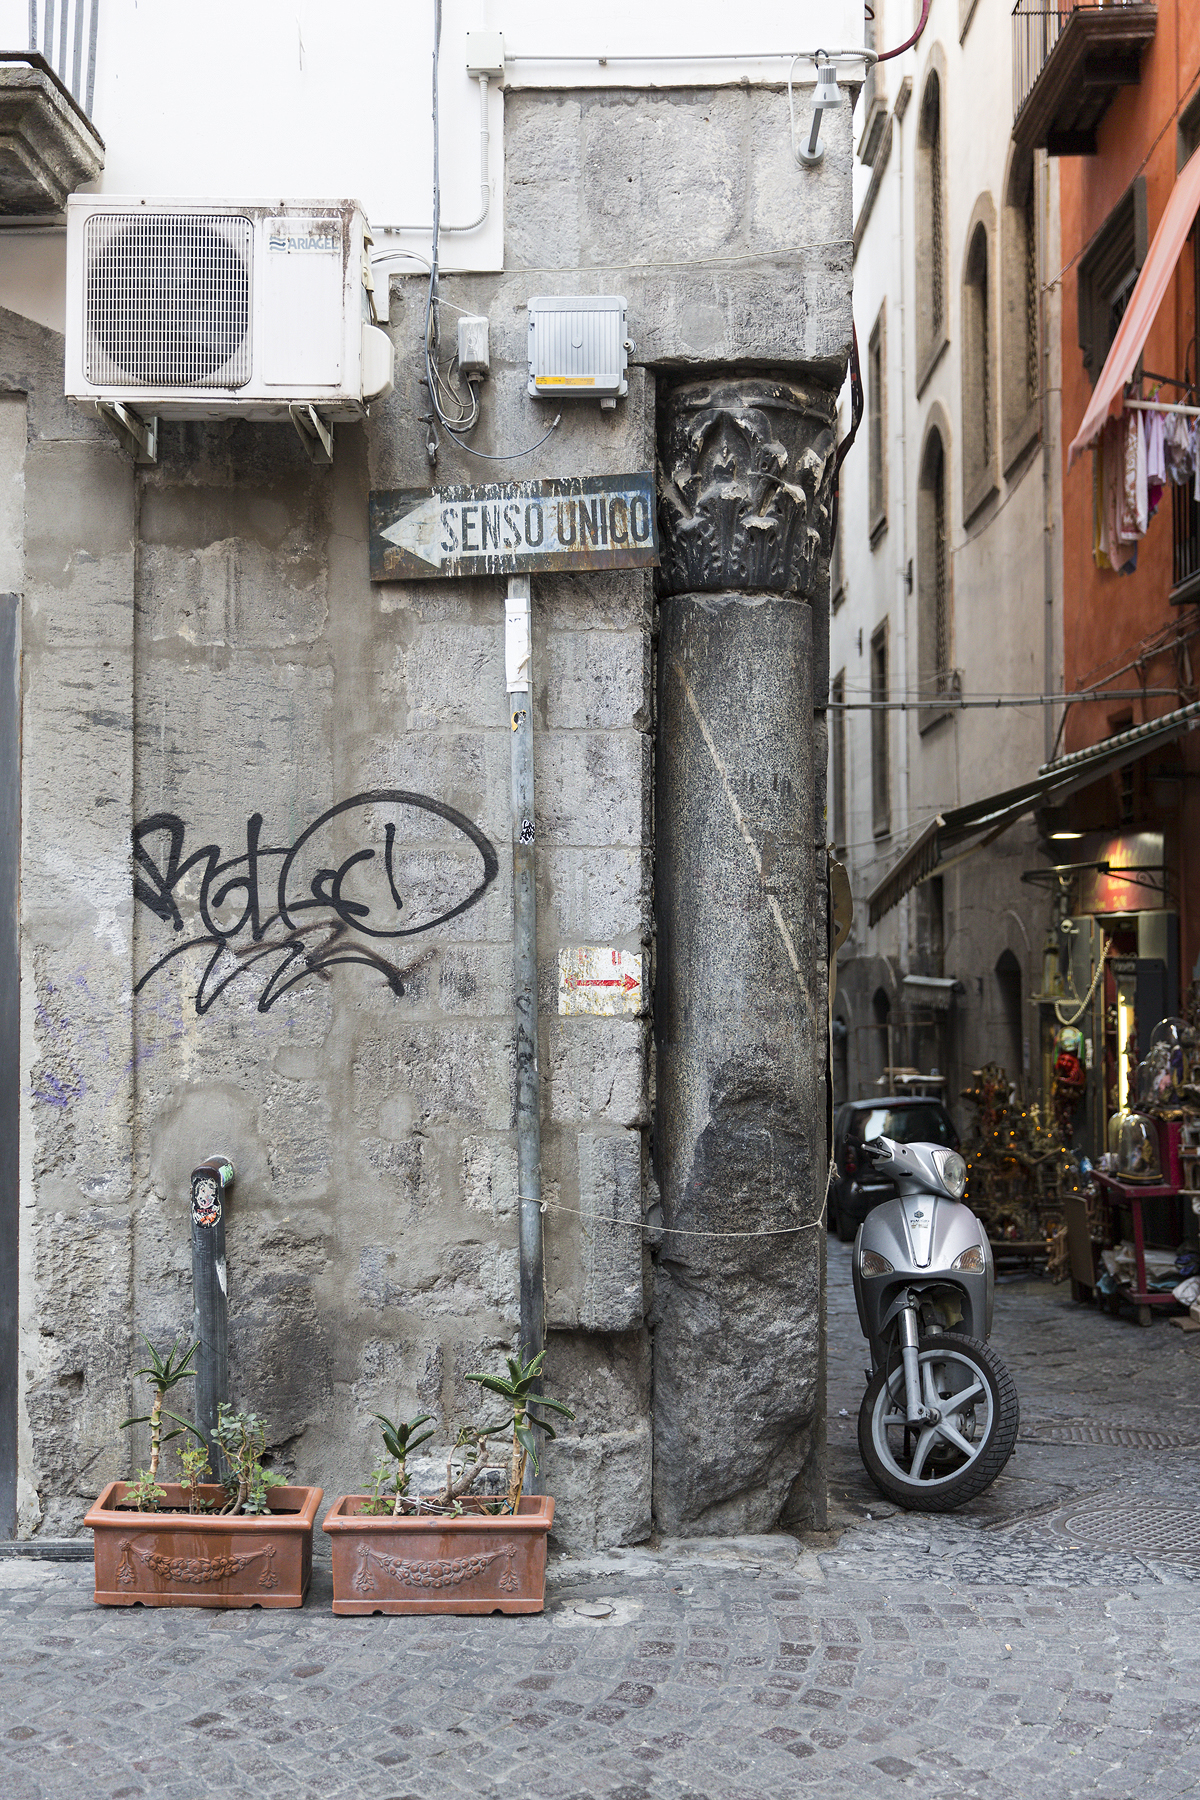 Naples AirBnB Experience